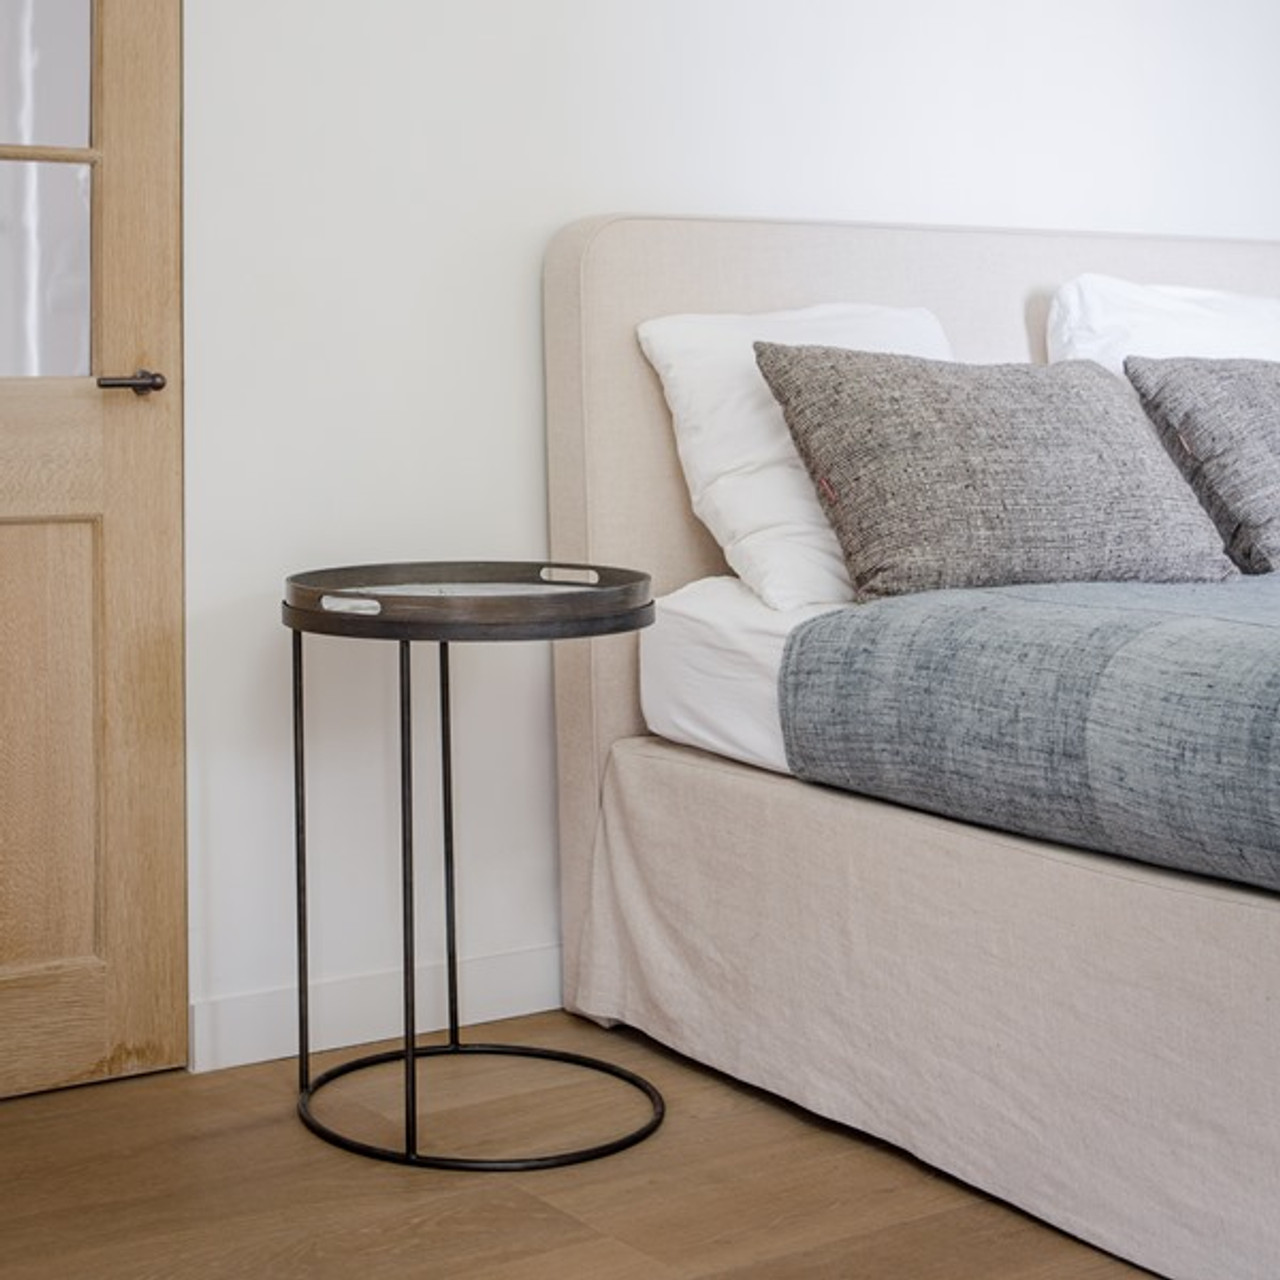 Notre Monde  Round Tray Table Small SKU: TGN-020704